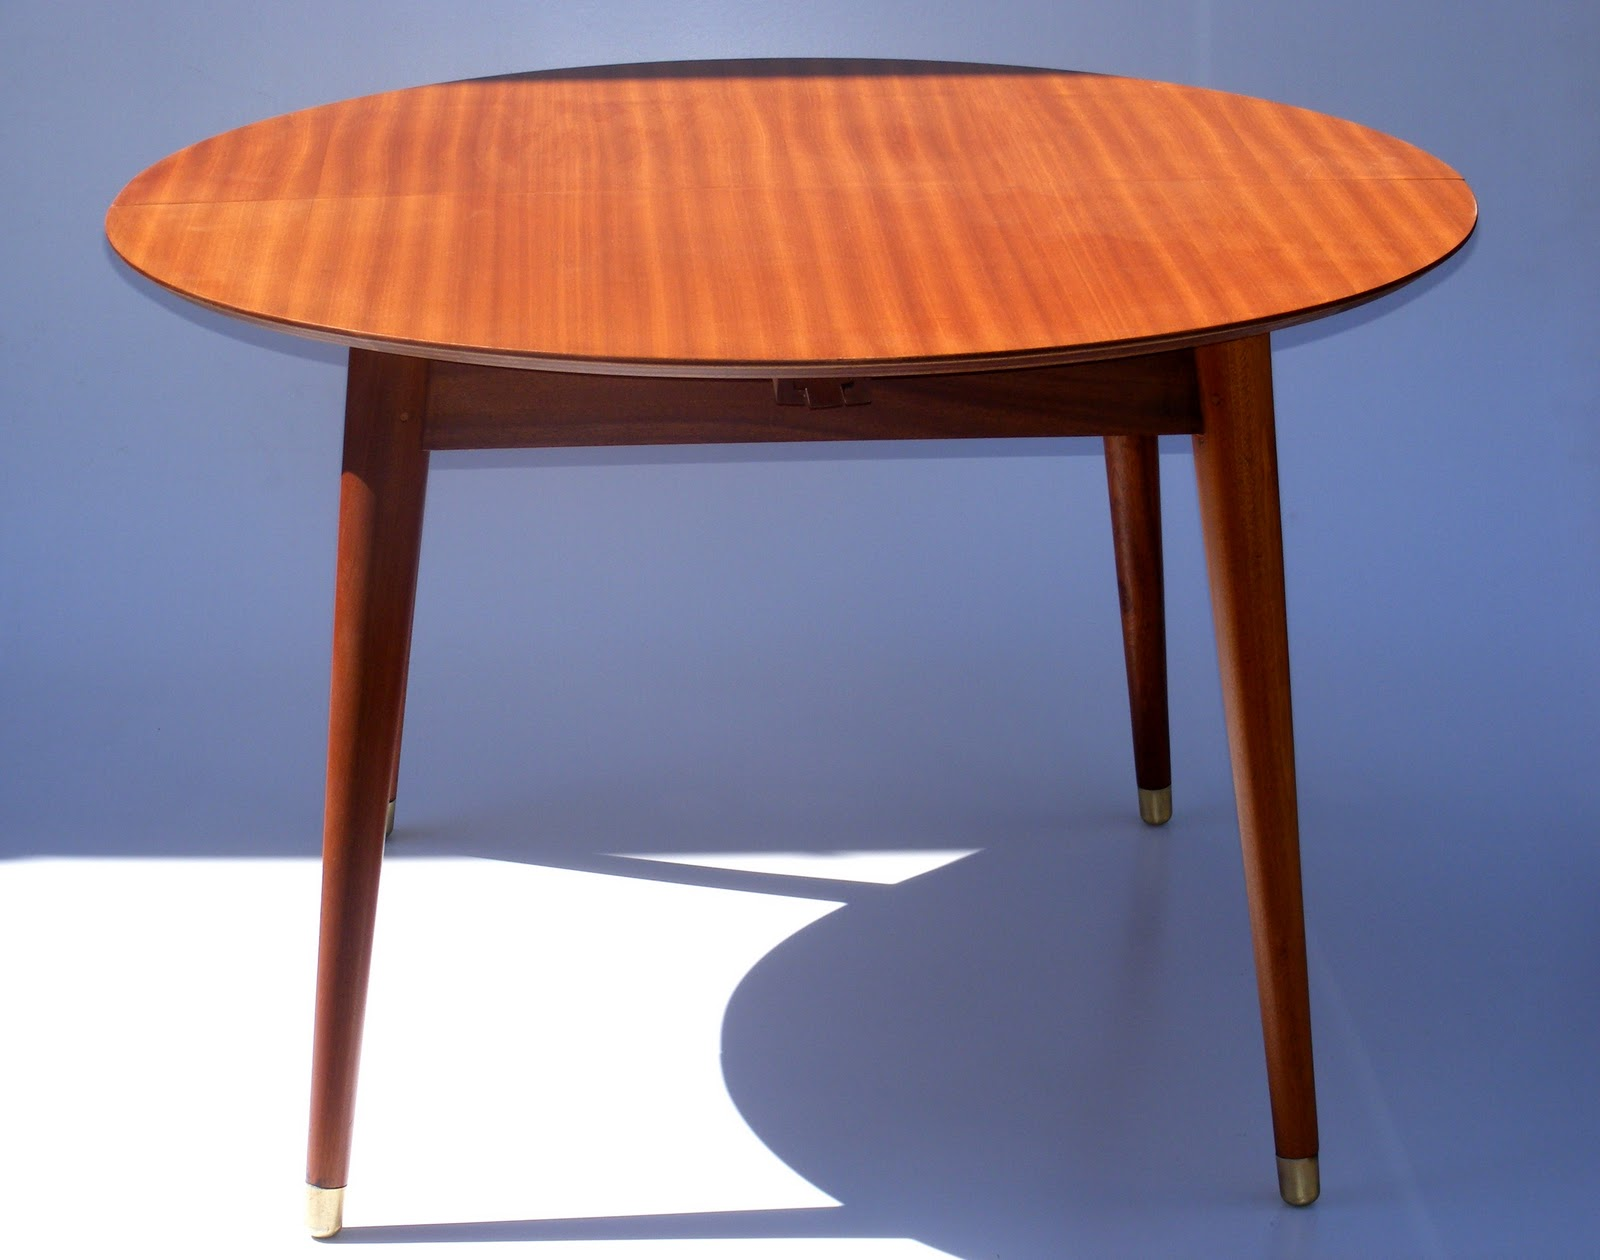 Vamp furniture new stock at vamp this week for Table extensible 4 a 6 personnes